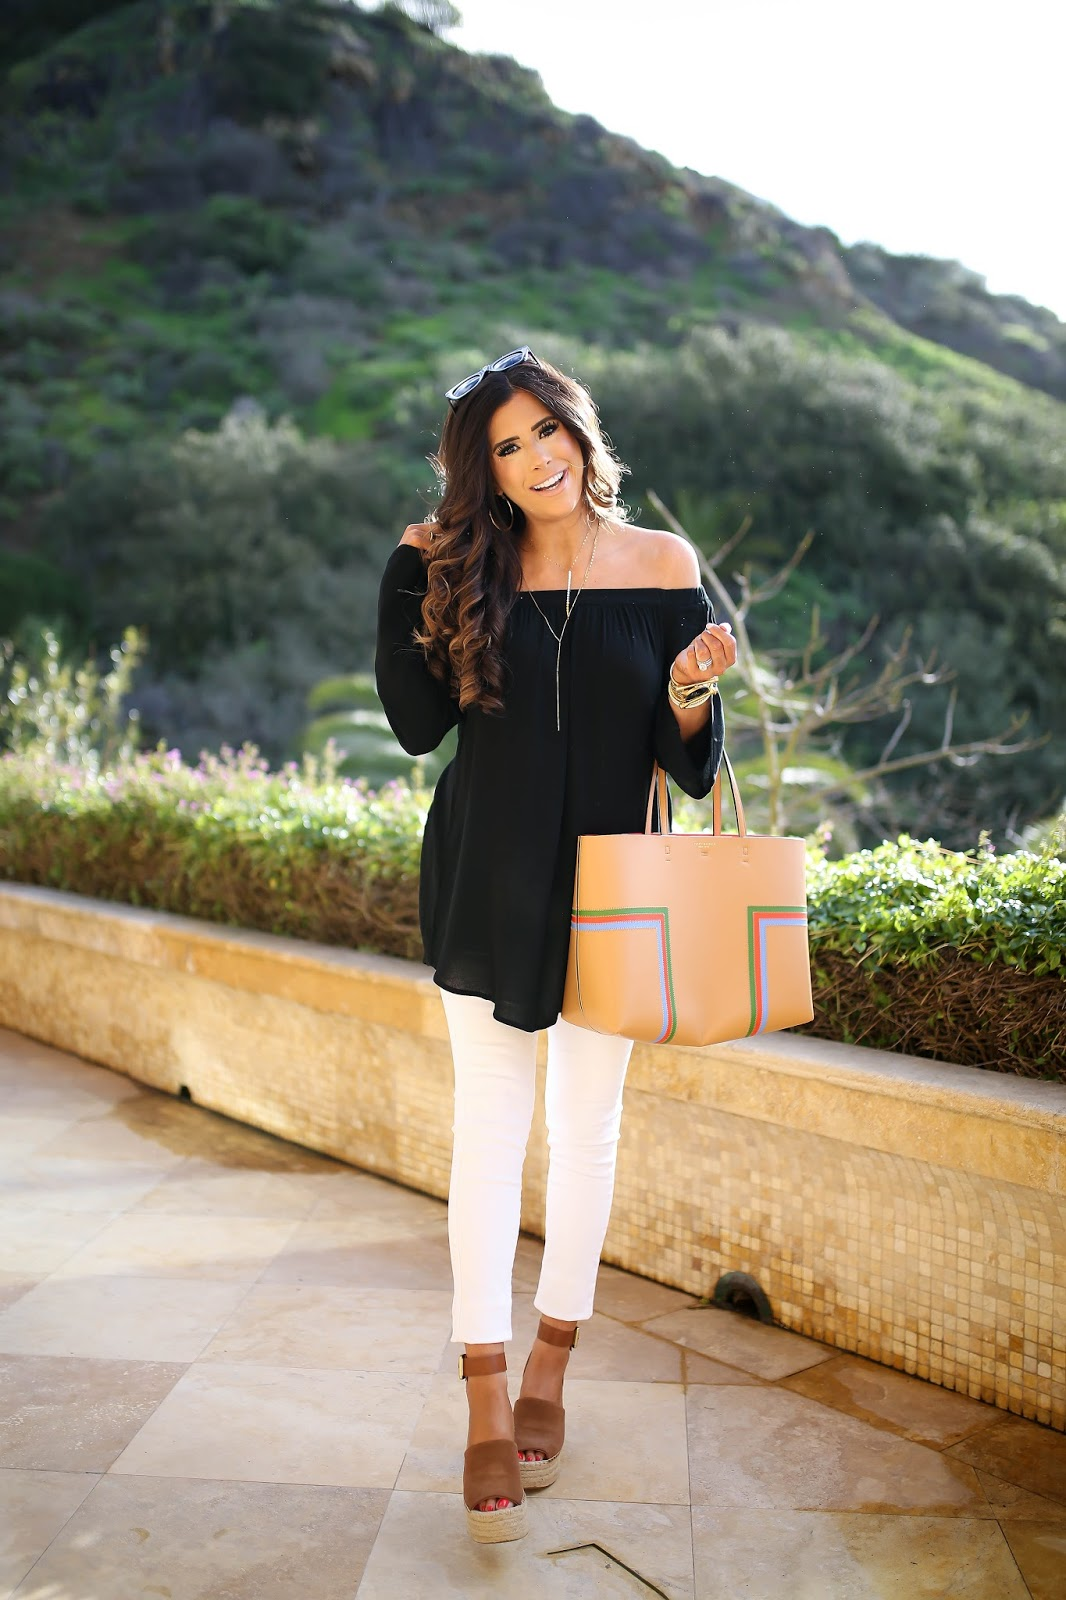 Emily Gemma, The sweetest thing blog, Nordstrom off the shoulder top, tory burch leather tote black tan, marc fisher wedges review, nordstrom wedges spring, chloe dupe wedges, marc fisher wedges adalyn in saddle, Lana jewelry 14k necklace, black ripped maternity jeans, DL1961 maternity jeans, laguna beach fashion blog, laguna beach best places to eat, montage laguna beach The Loft review, spring fashion trends 2017, spring fashion pinterest, spring outfits pinterest, gucci marmot medium white bag, nixon gold watch with black face, the styled collection bracelets, spring outfit ideas with off the shoulder tops, laguna beach blog review, tory burch